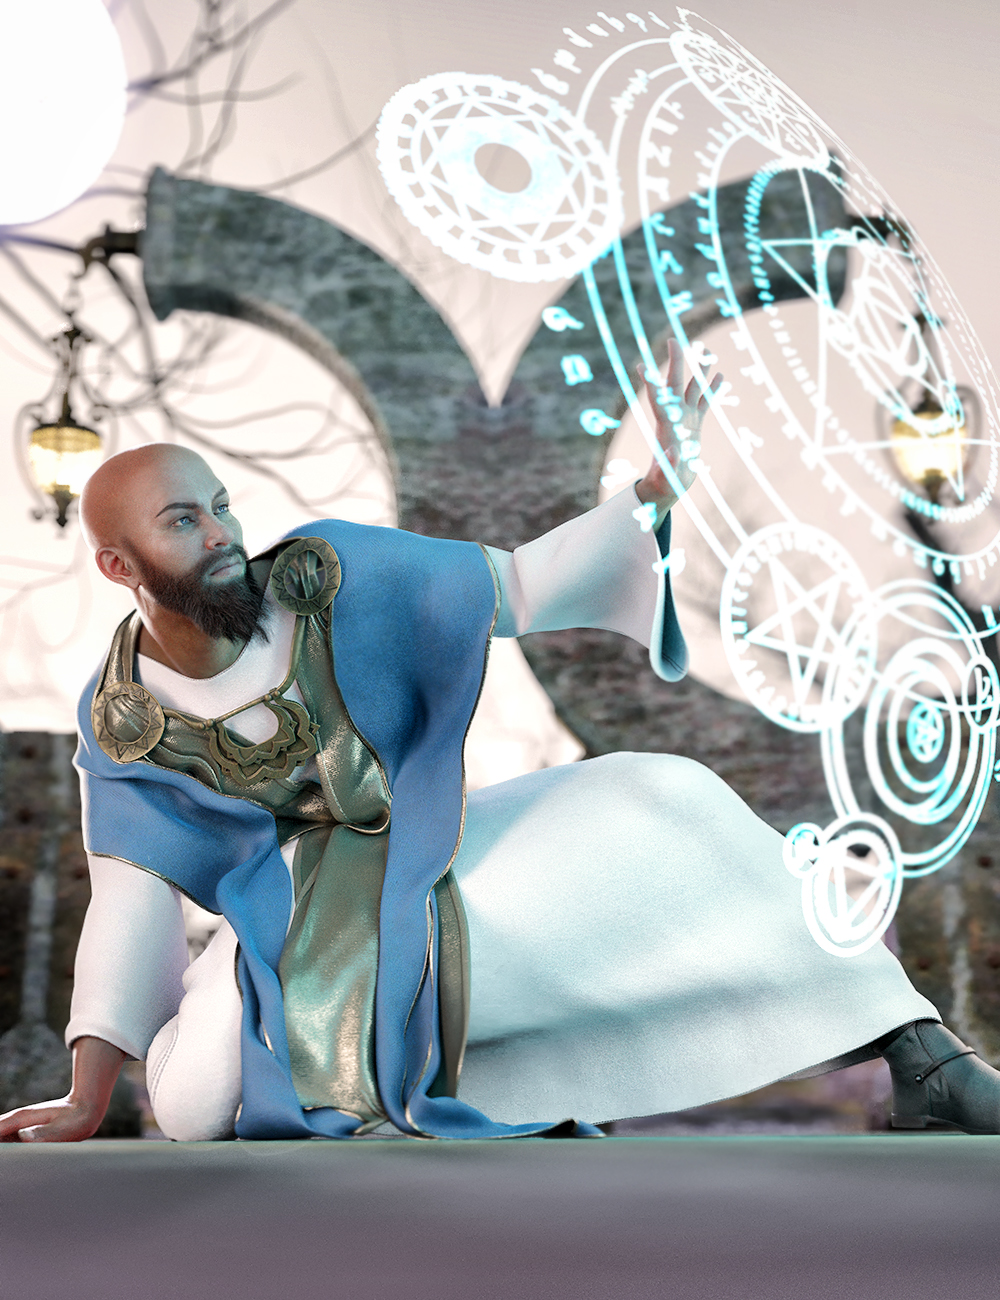 dForce Insidious Monk Outfit for Genesis 8 Male(s) by: Barbara BrundonMoonscape GraphicsSade, 3D Models by Daz 3D